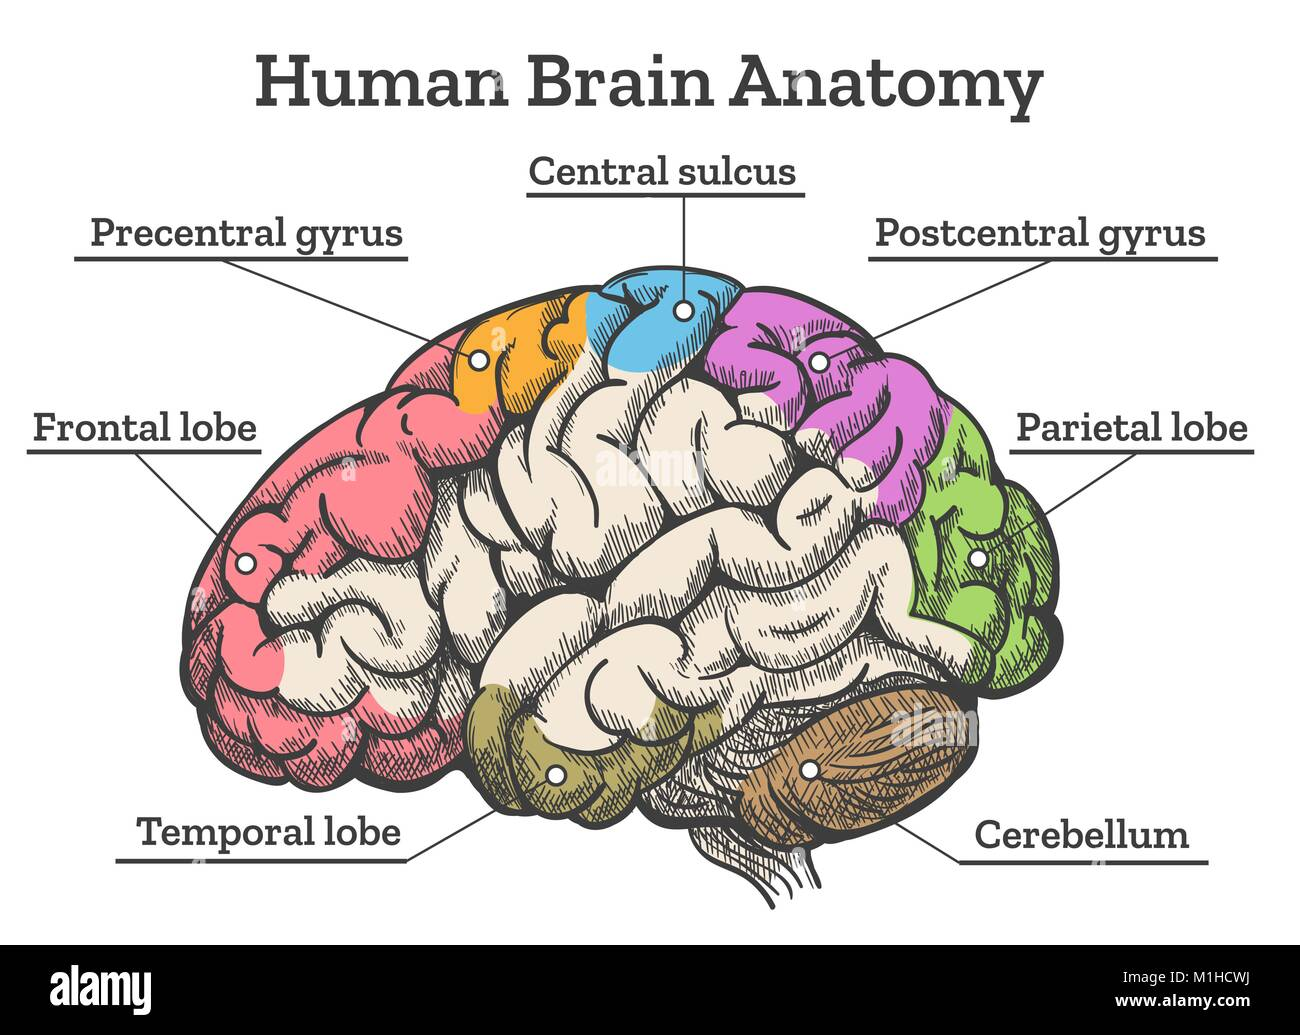 Human brain anatomy diagram. Sections of head brain vector illustration - Stock Image